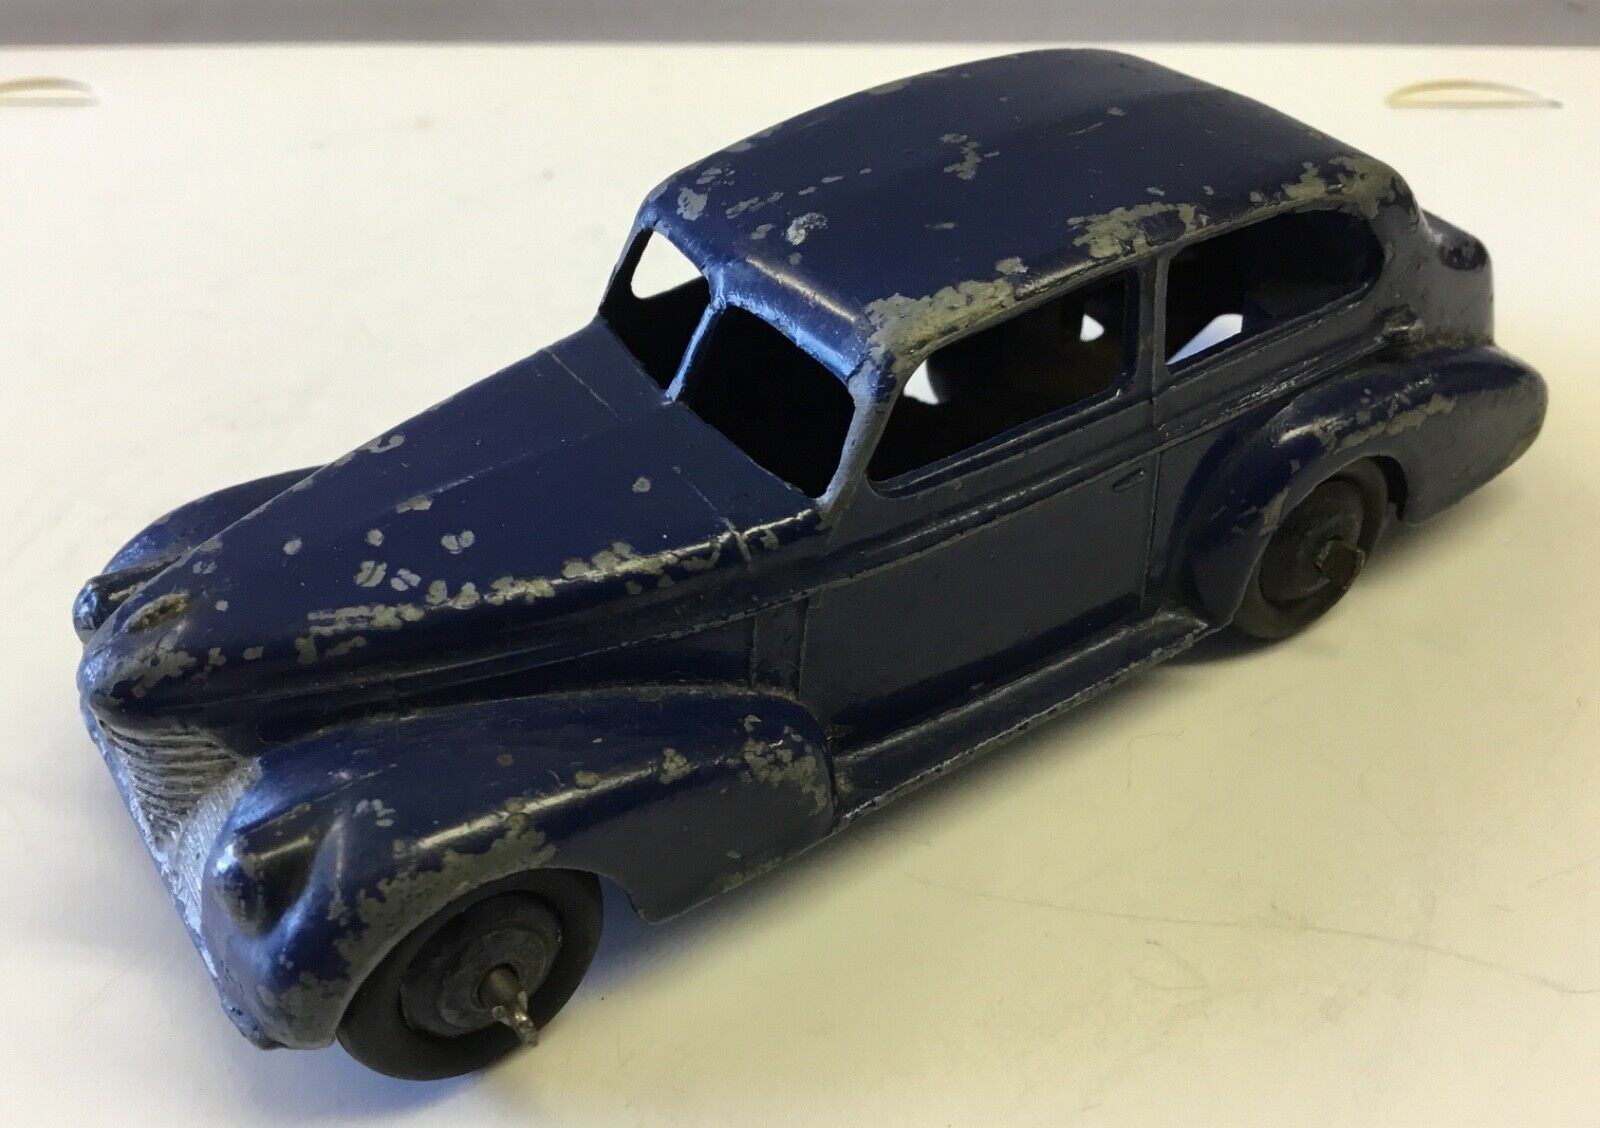 DINKY TOYS 39b OLDSMOBILE OLDSMOBILE OLDSMOBILE 6 SEDAN.DARK blueE.ORIGINAL WITH MODERATE PAINT WEAR 29ae41